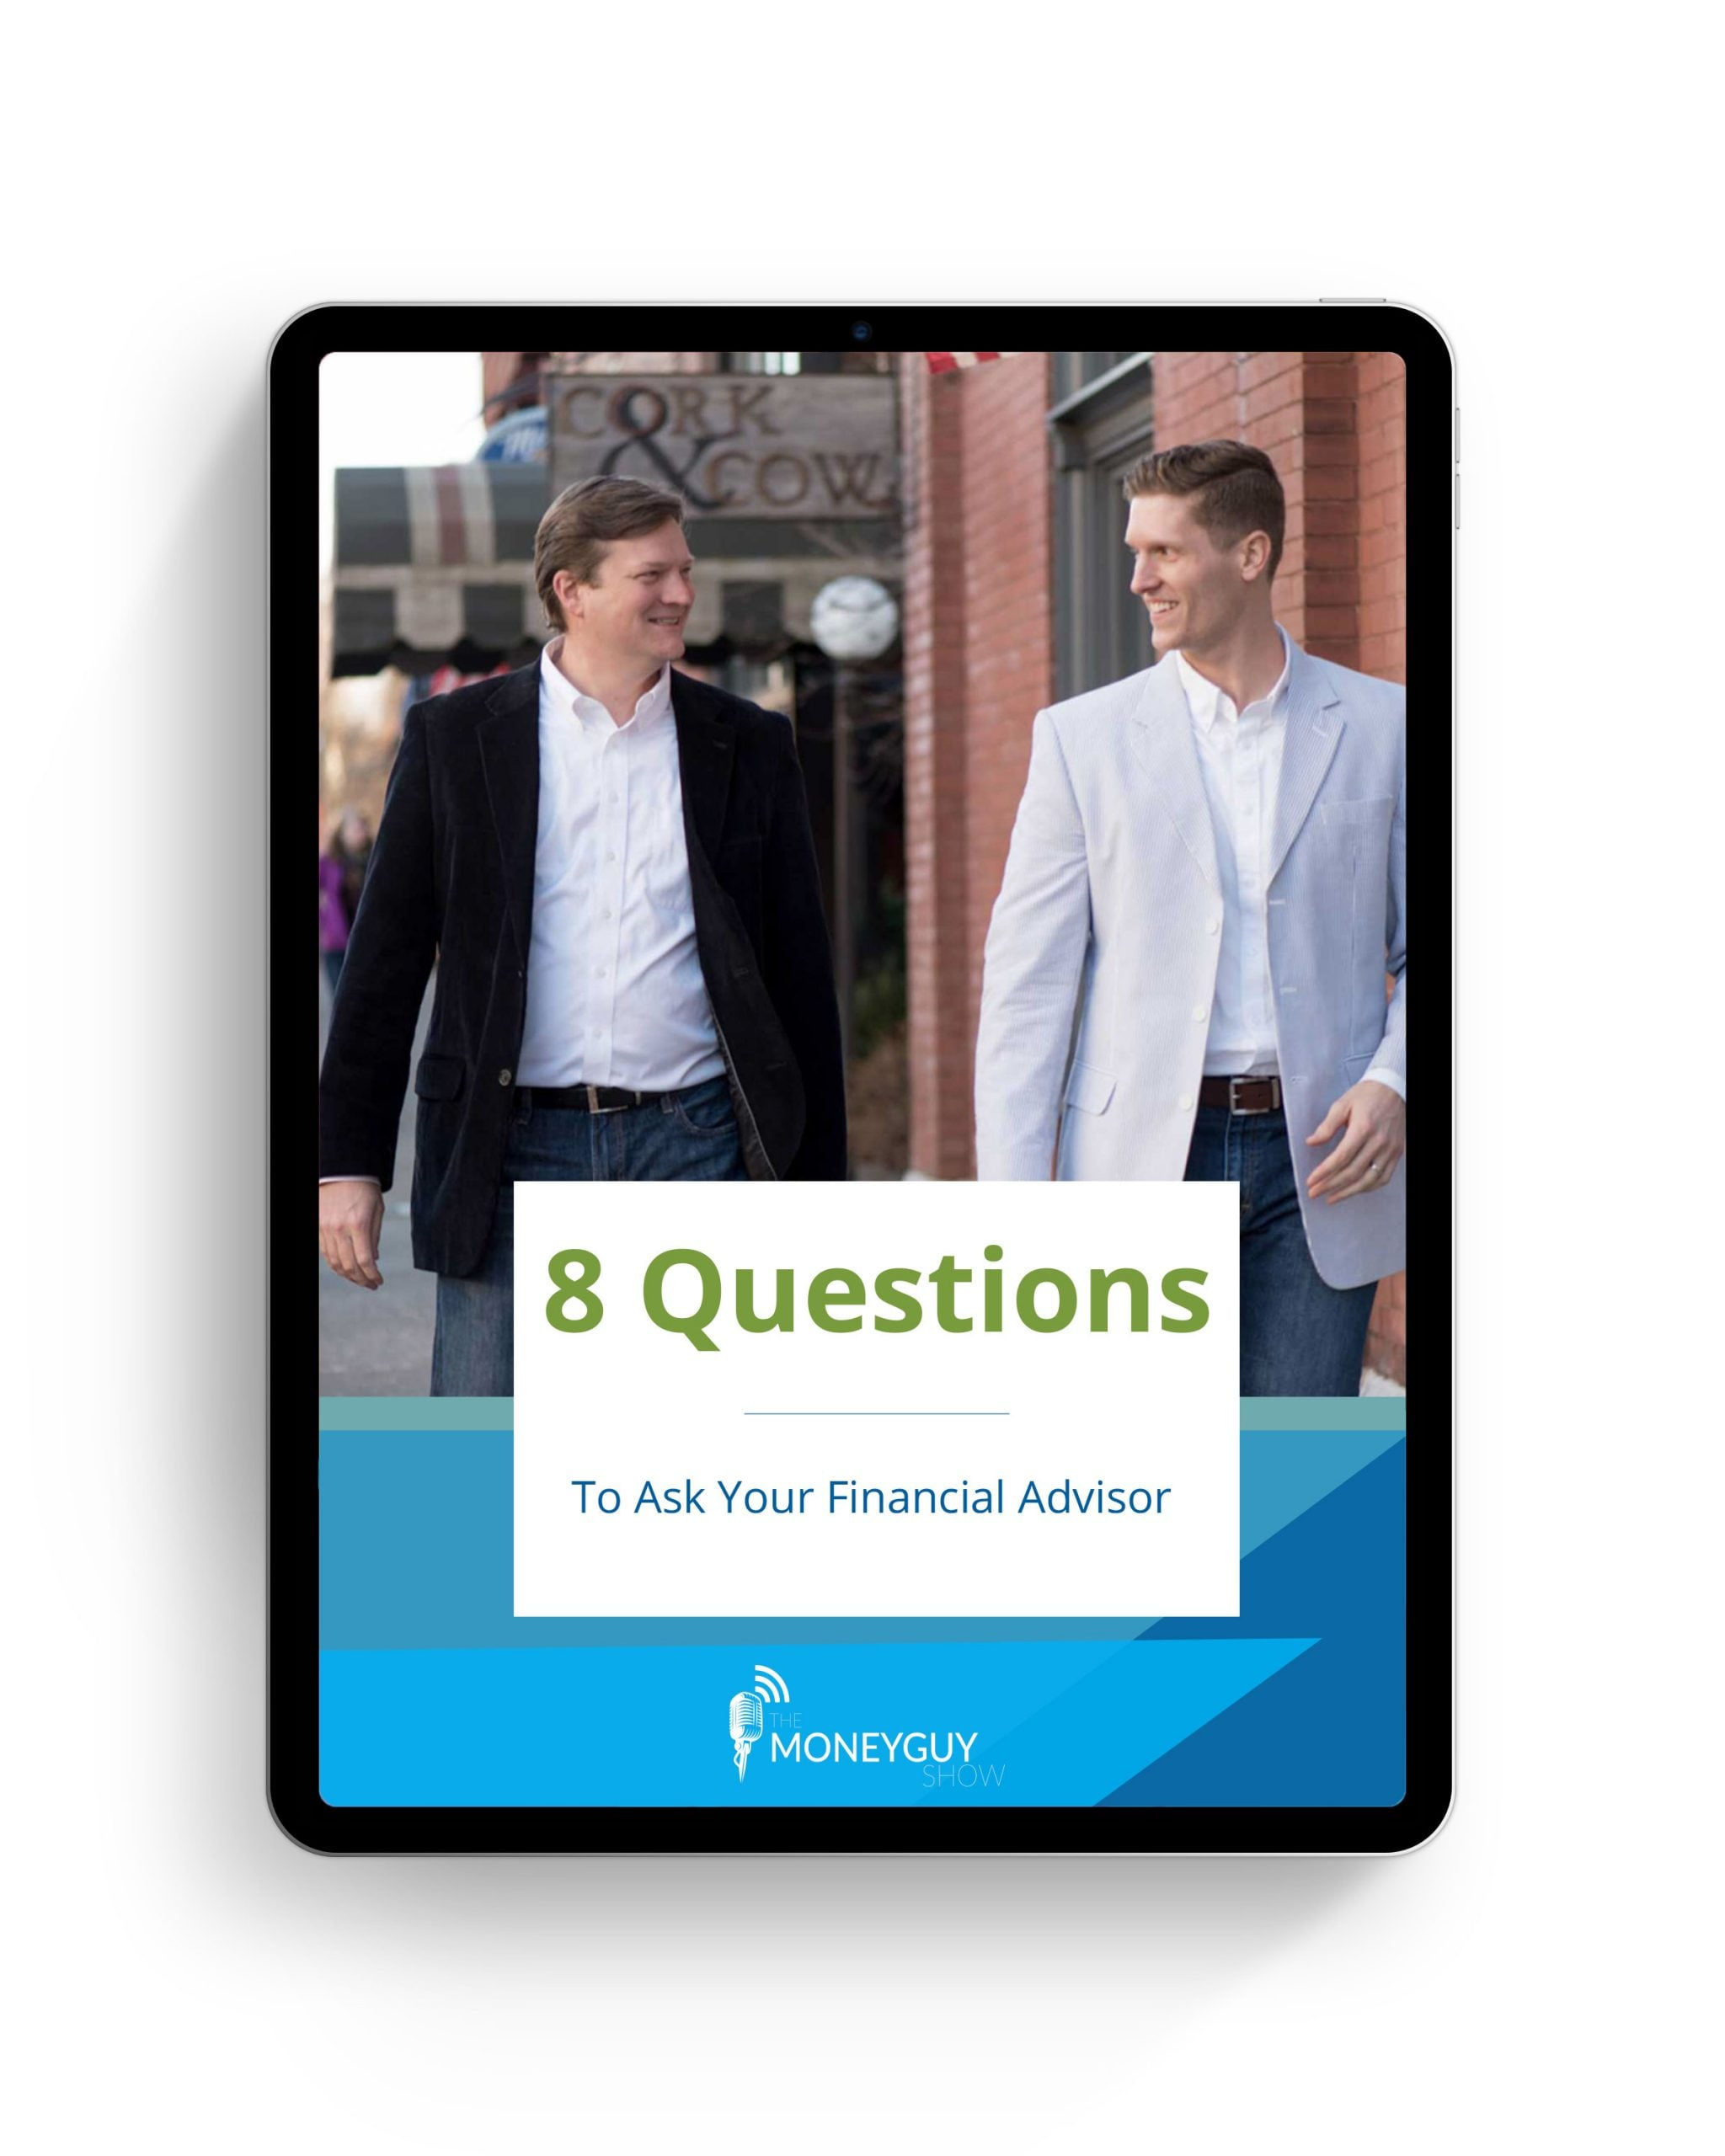 8-Questions-to-Ask-Your-Financial-Advisor